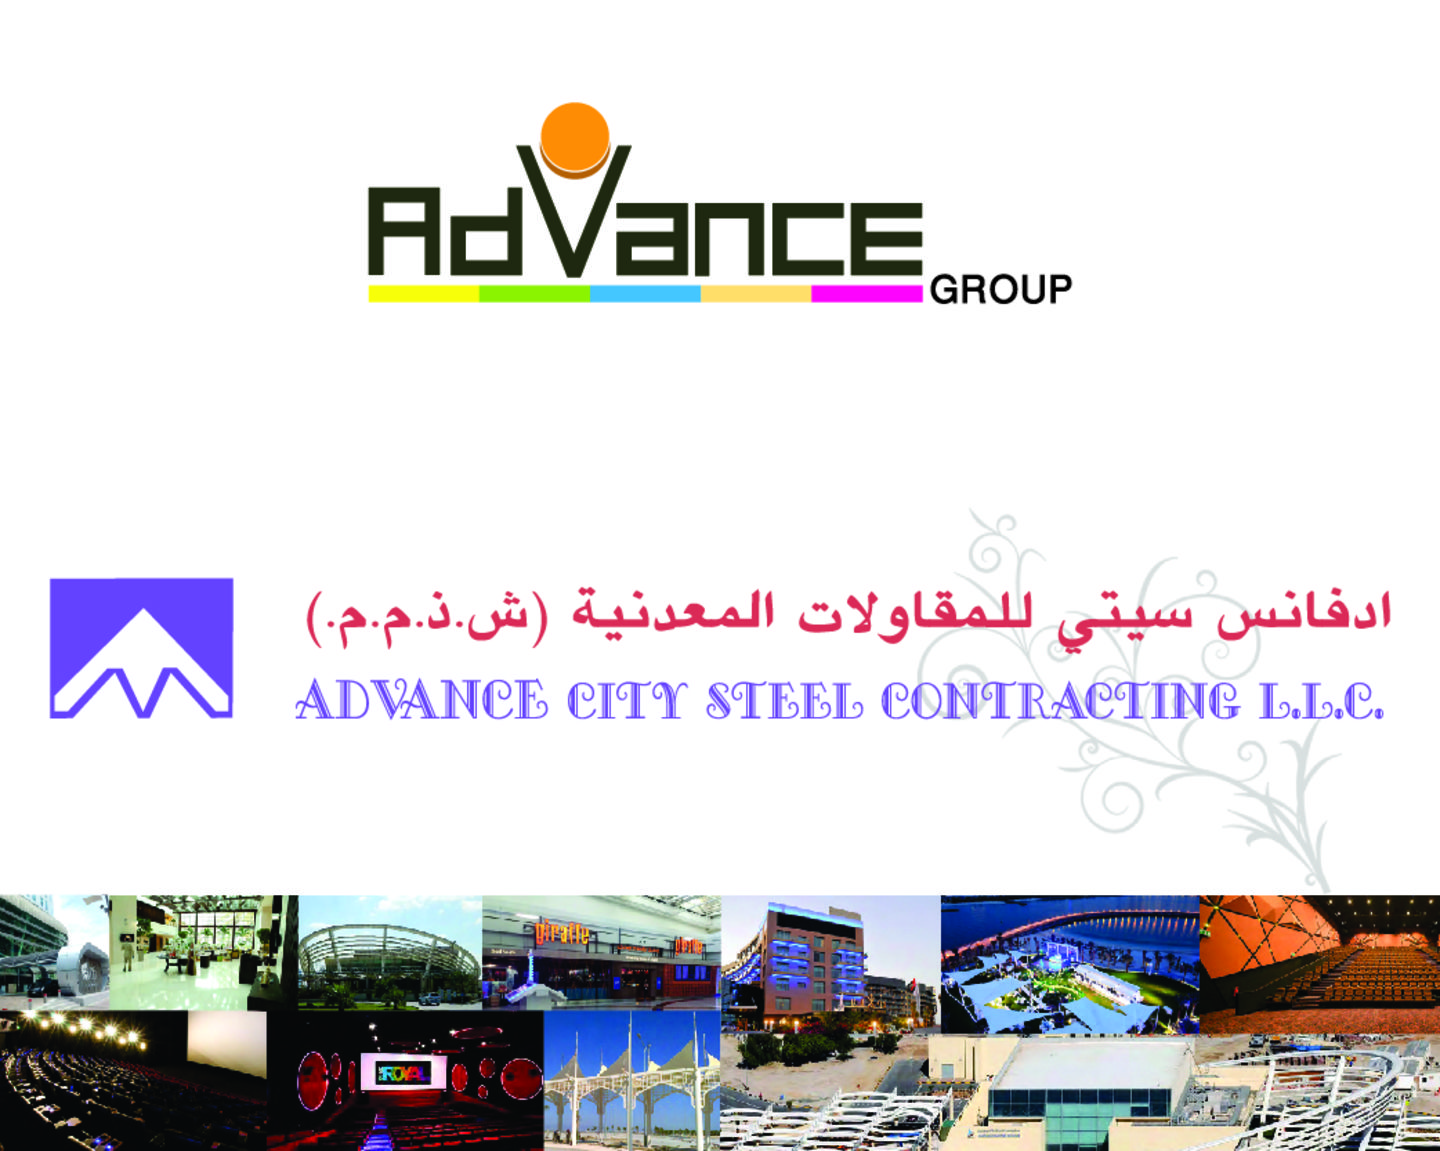 HiDubai-business-advance-city-steel-contracting-construction-heavy-industries-architects-design-services-al-qusais-1-dubai